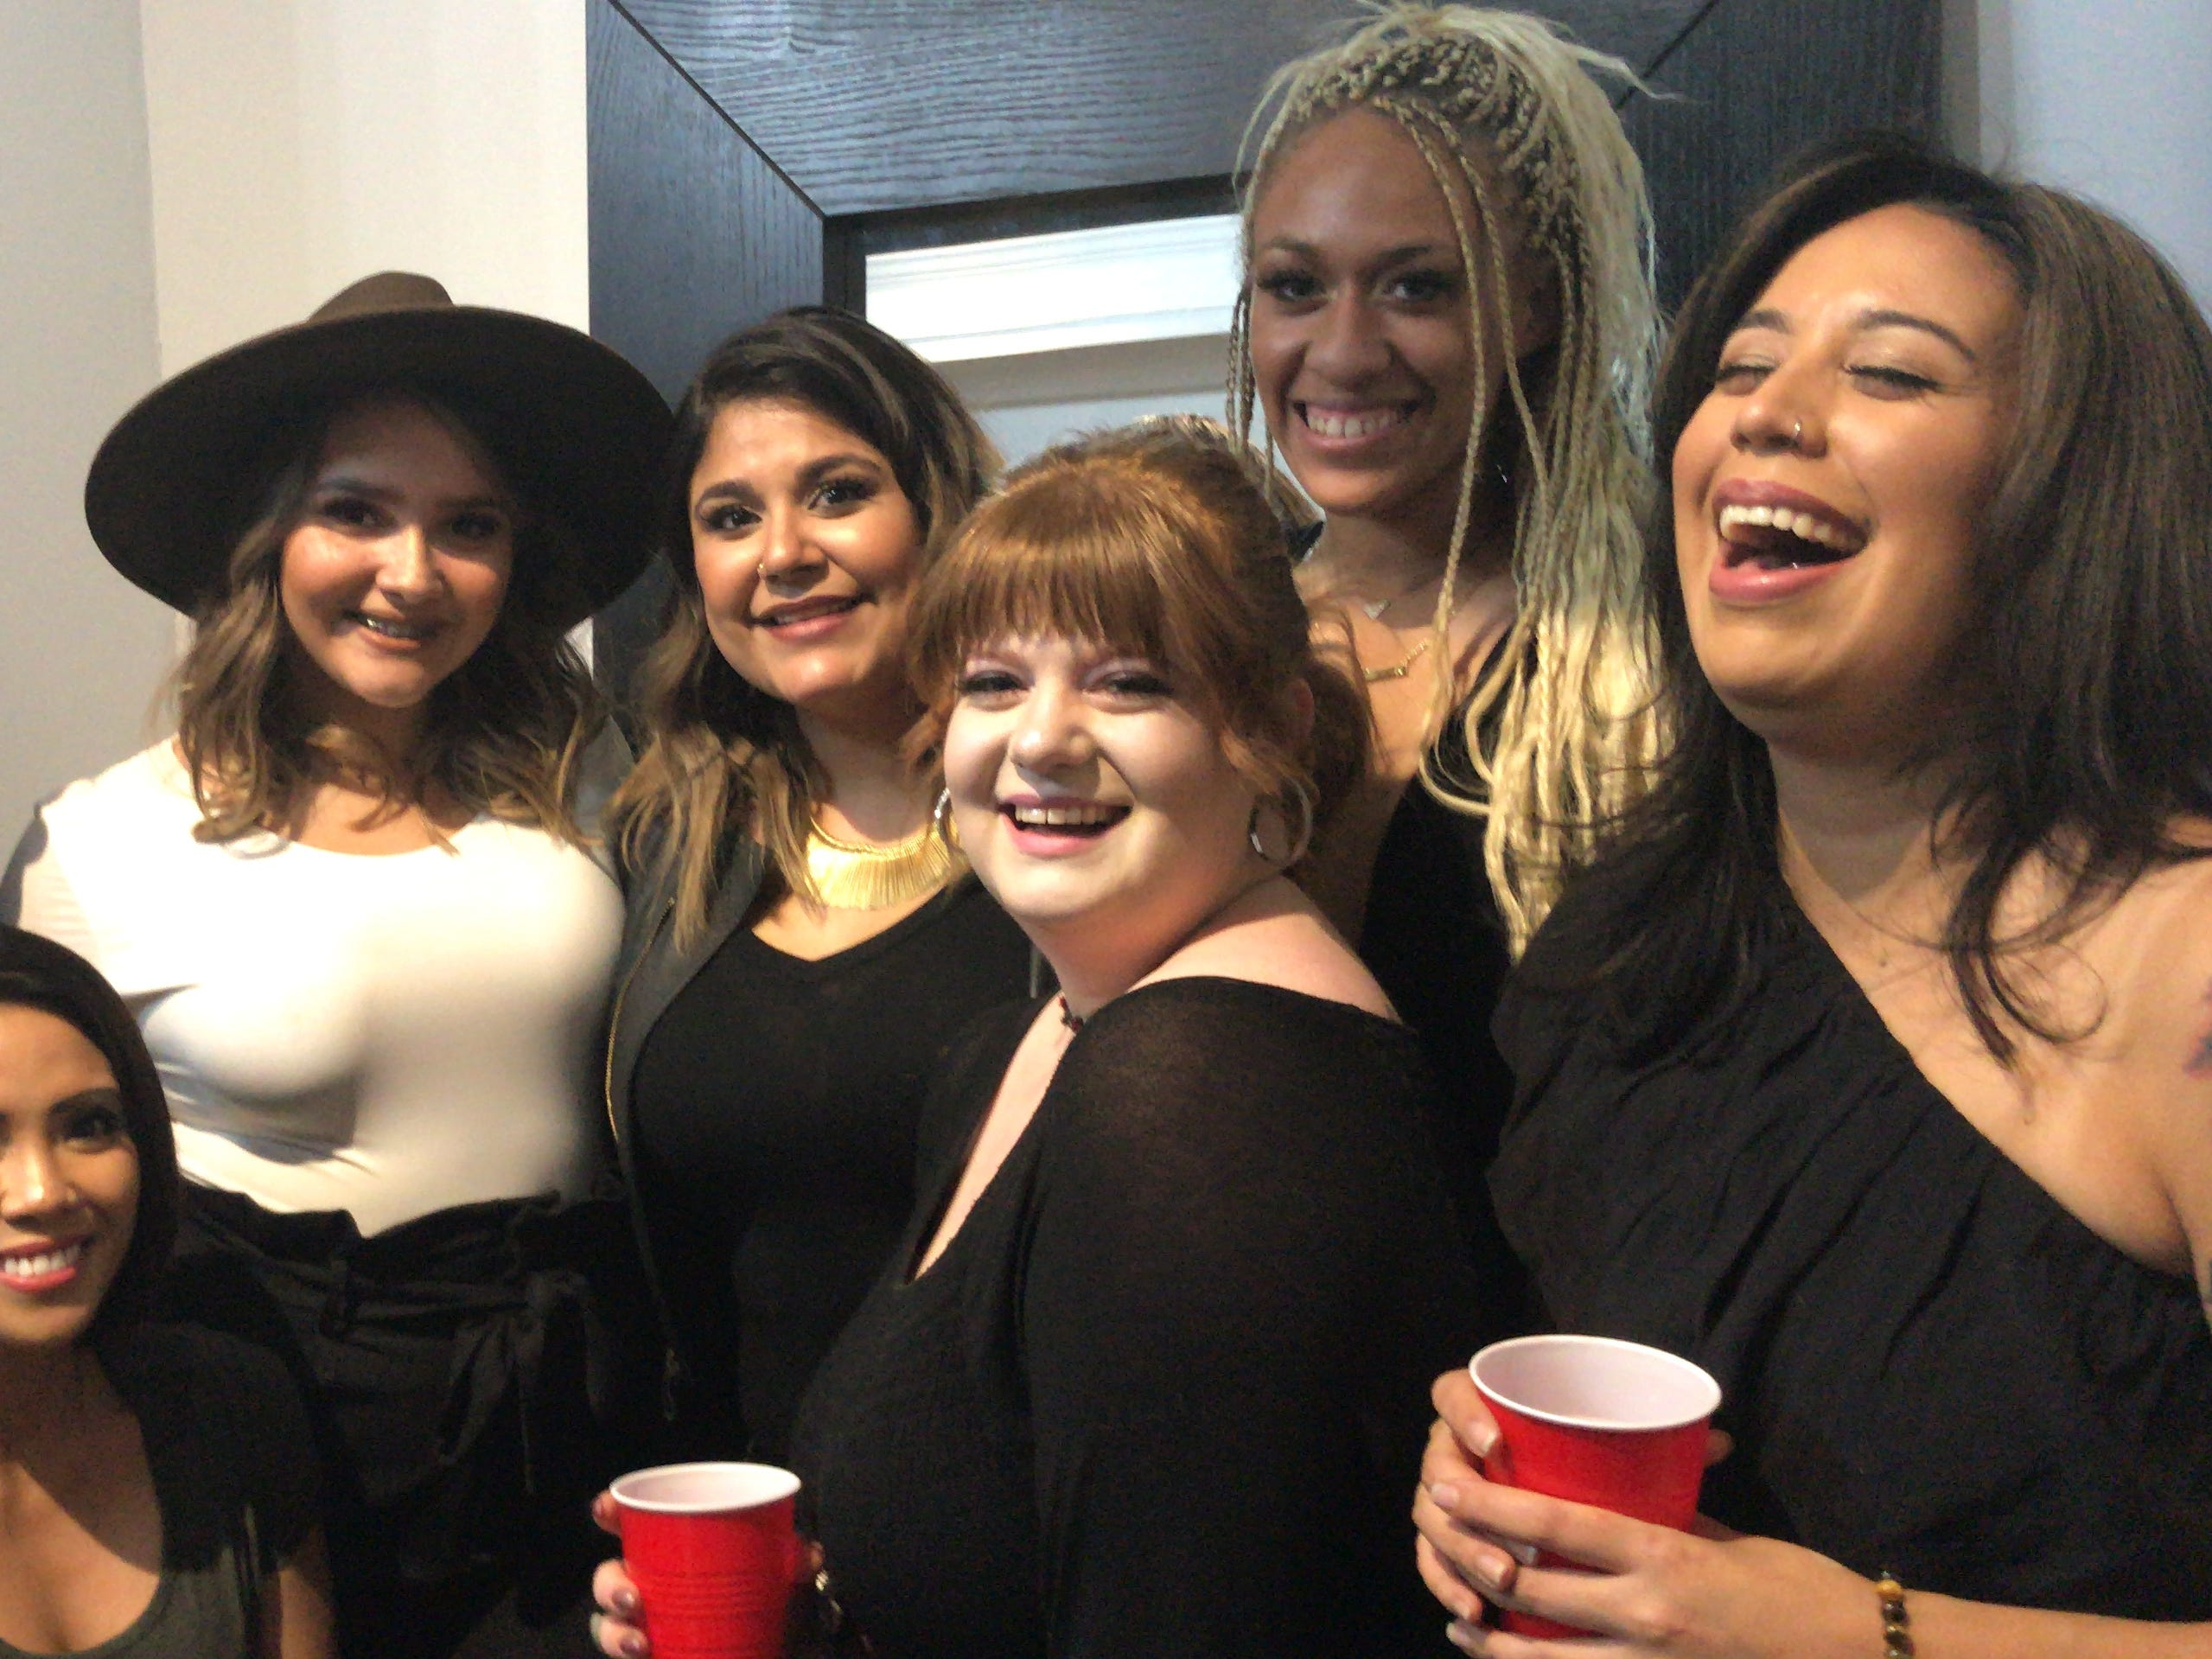 Jenny Jacome, center, is pictured with her staff at Illustrated Beauty in Somerville. From left to right are Amanda Fleming, Cielona Bocco, Hayley Terrell, Ashley Neuman, Zhane Sweeney, and Amanda Hidalgo.